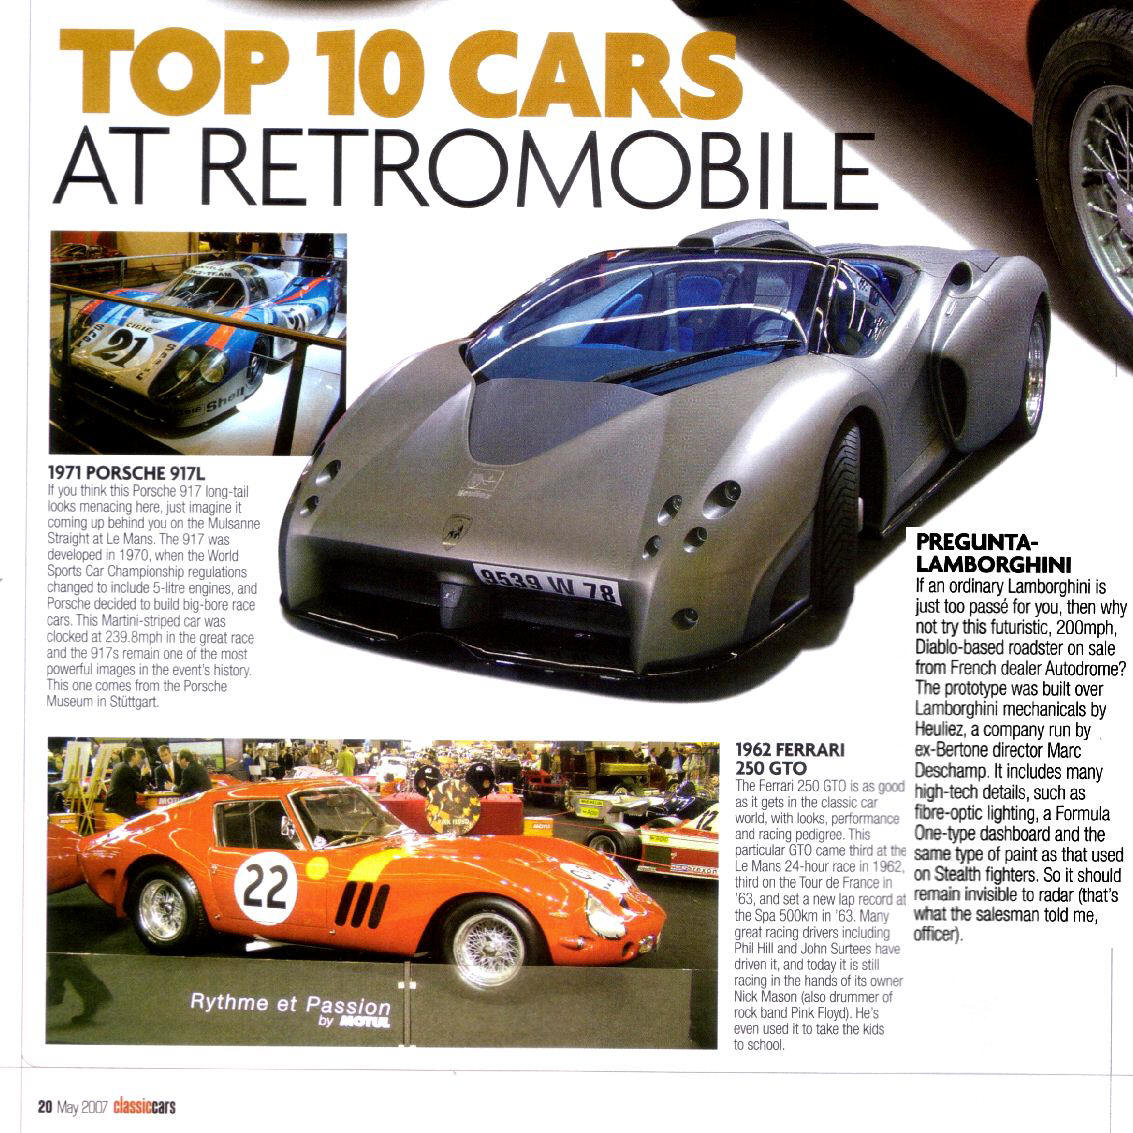 The Mythical PAGANI ZONDA : Press Comments